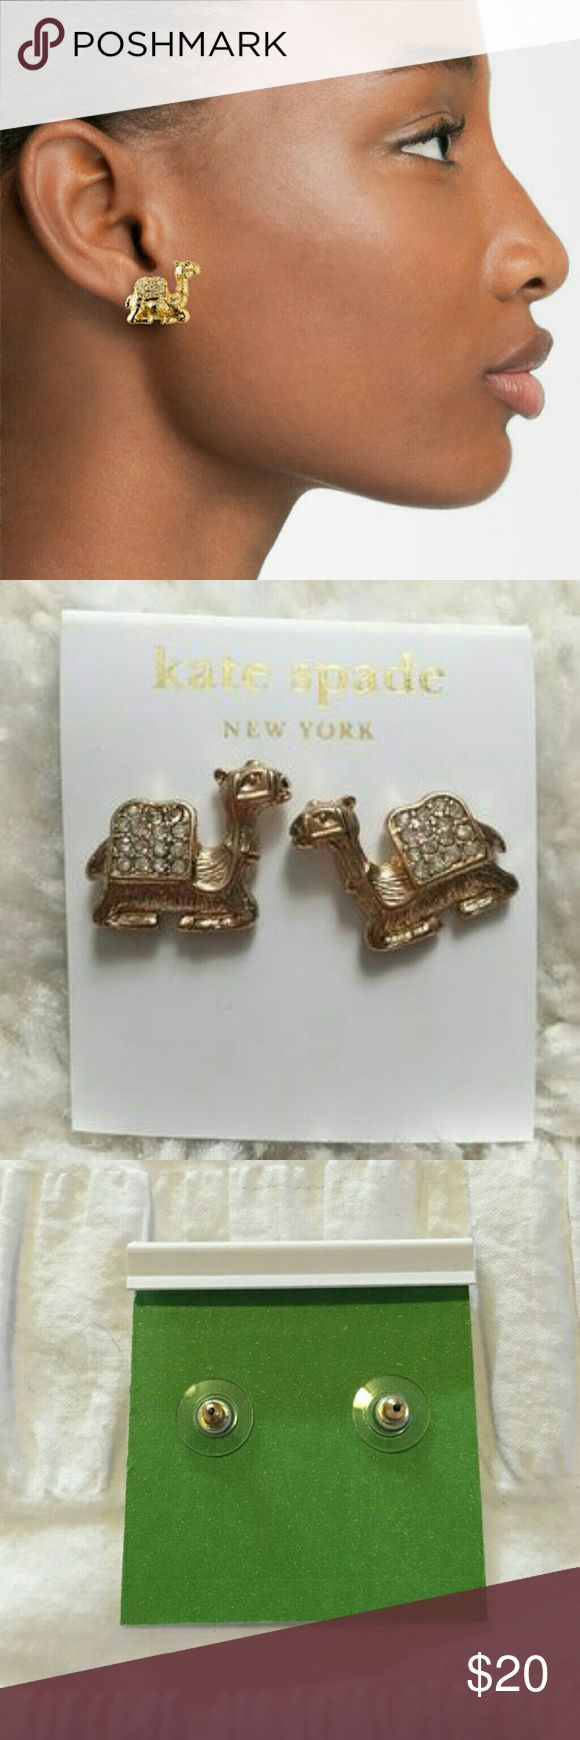 "Kate spade wild one camel earrings studs Bought online. came with the Kate spade earrings card. The earrings themselves not marked ""Kate spade"". Never worn. FINAL PRICE kate spade Jewelry Earrings"